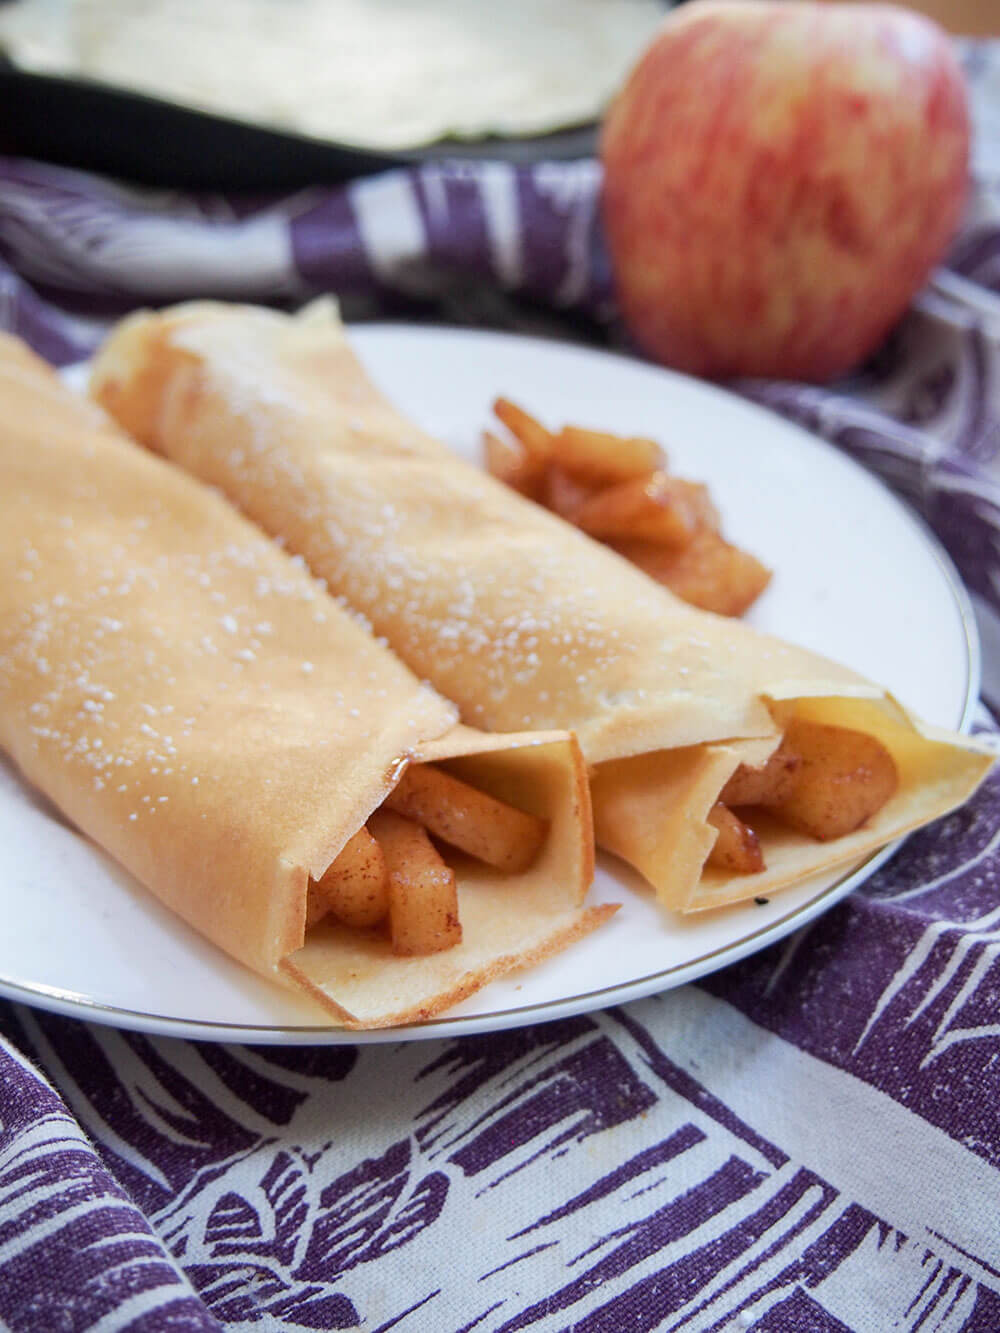 apple crepes from side with apple and extra crepe in background